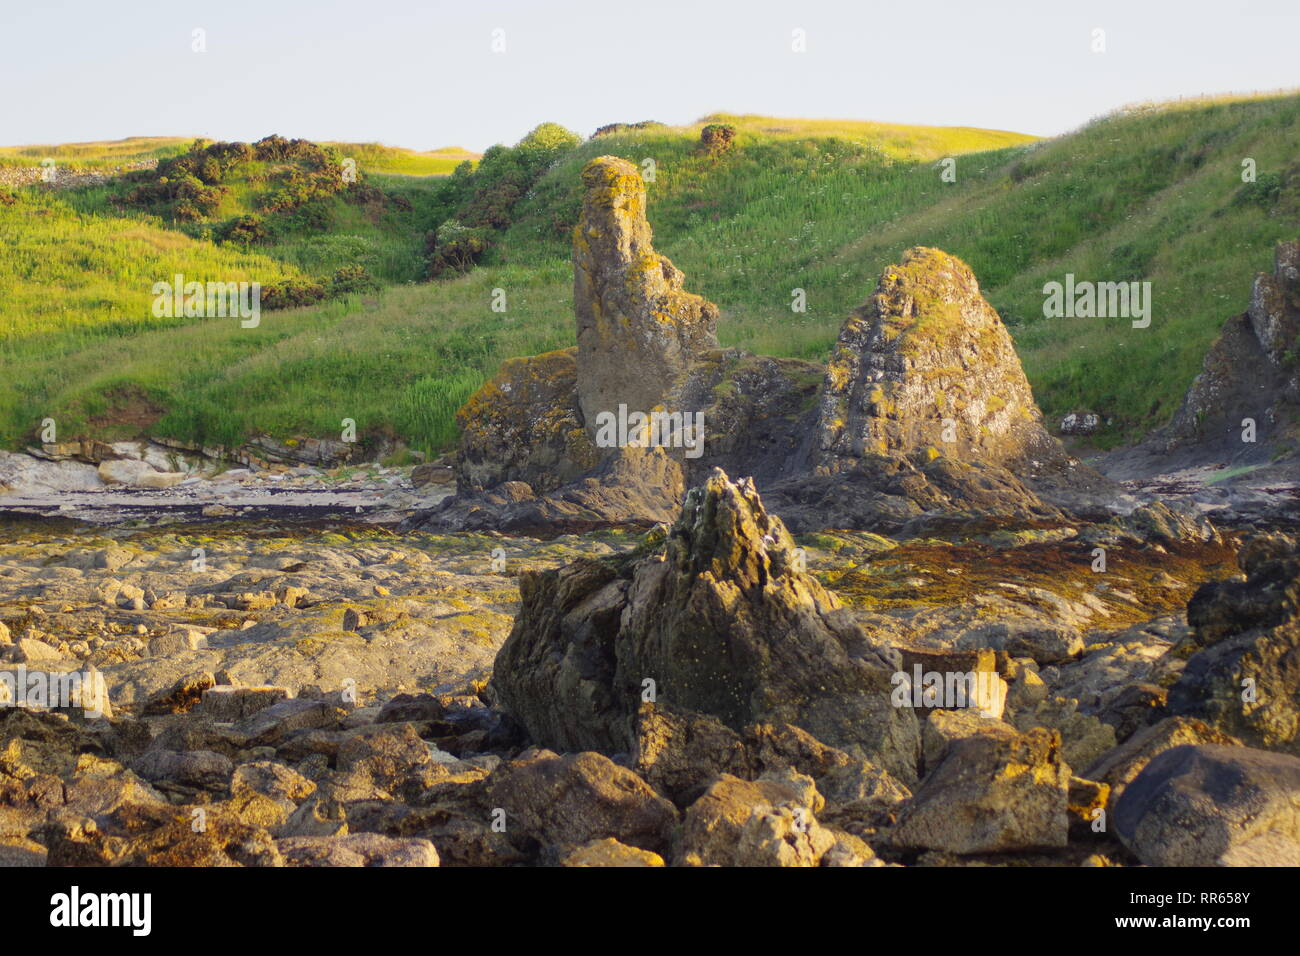 Rock and Spindle, Volcanic Neck Intrusion Sea Stack along the Fife Coast near St Andrew's, on a Fine Summers Evening. Scotland, UK. - Stock Image